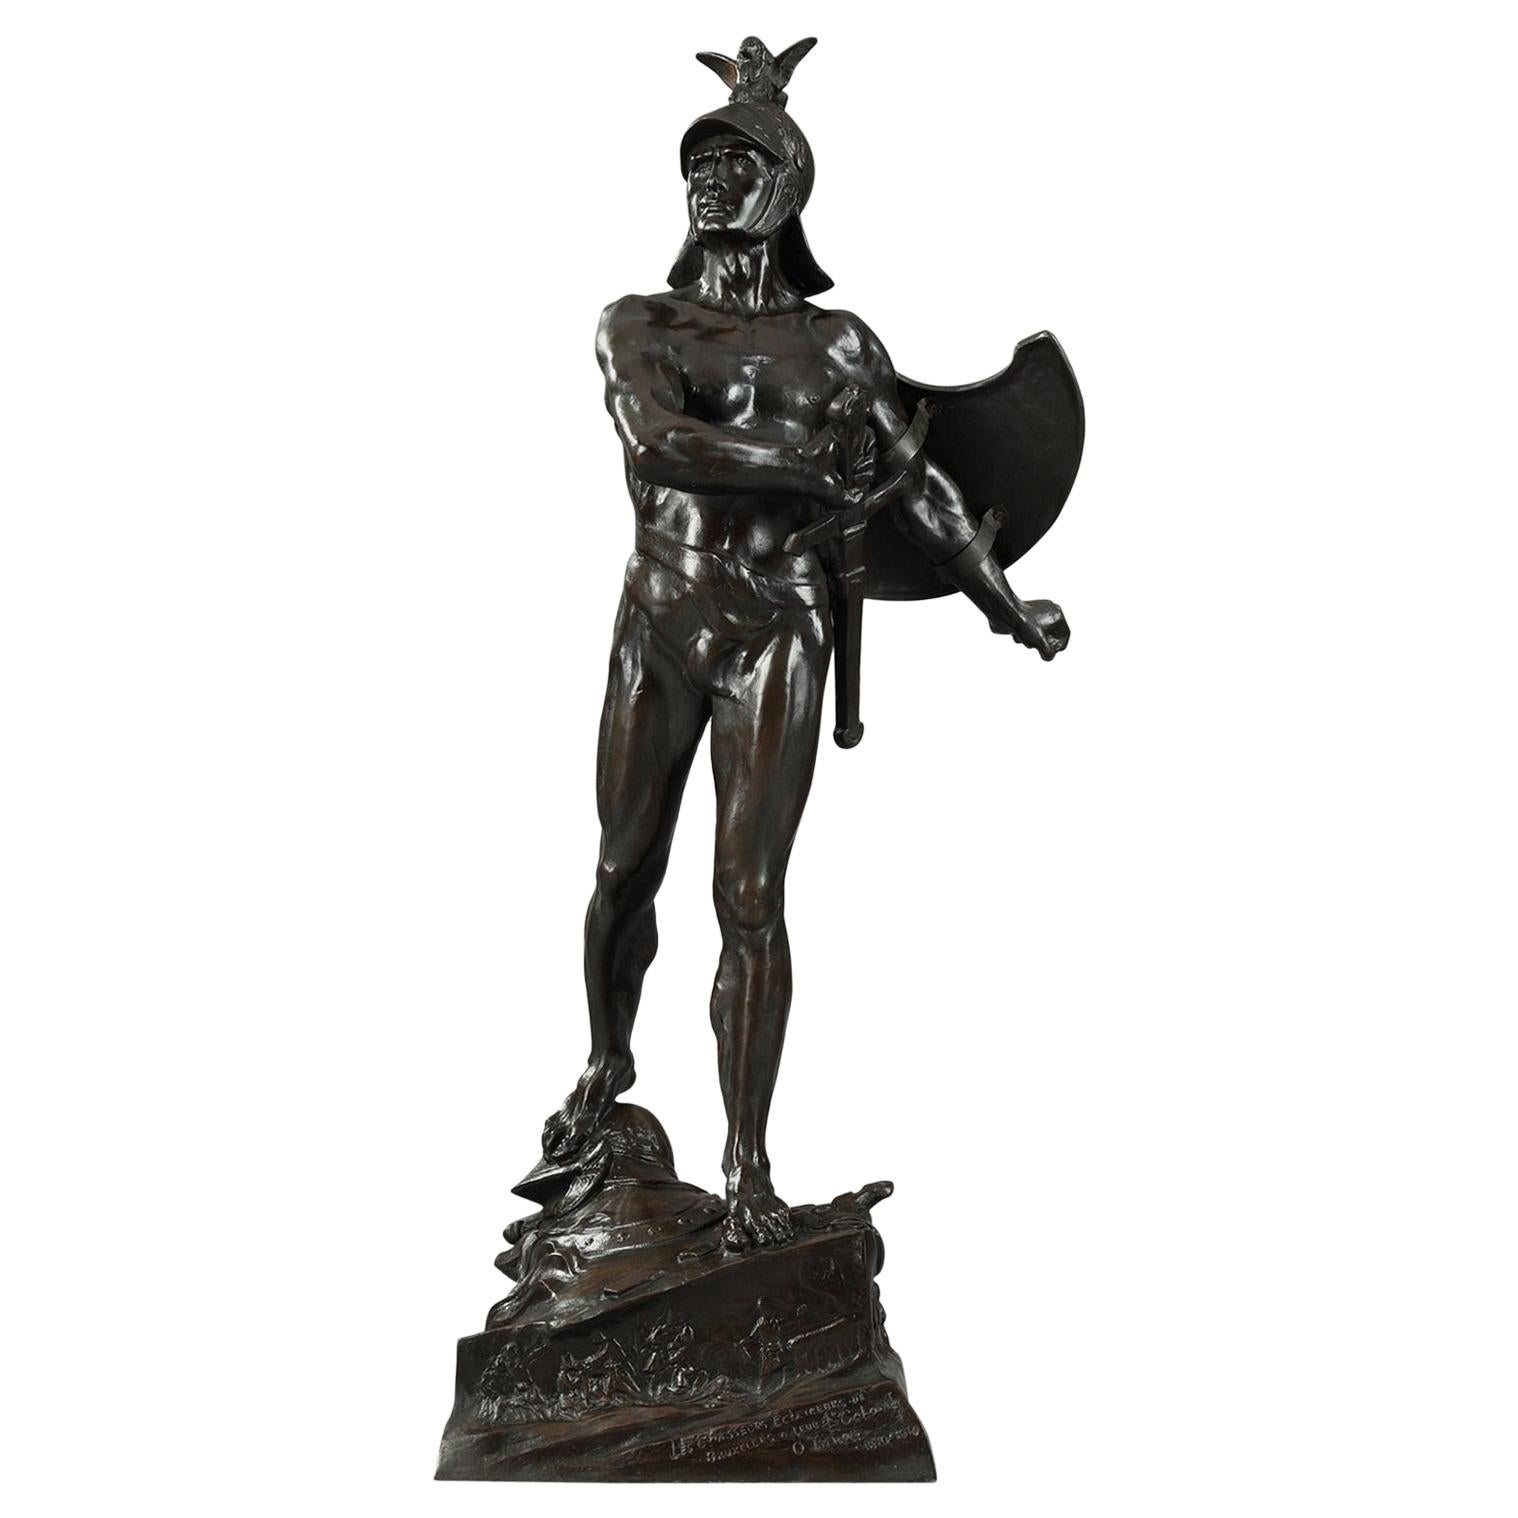 Late 19th Century Bronze Sculpture The Warrior by Auguste de Wever